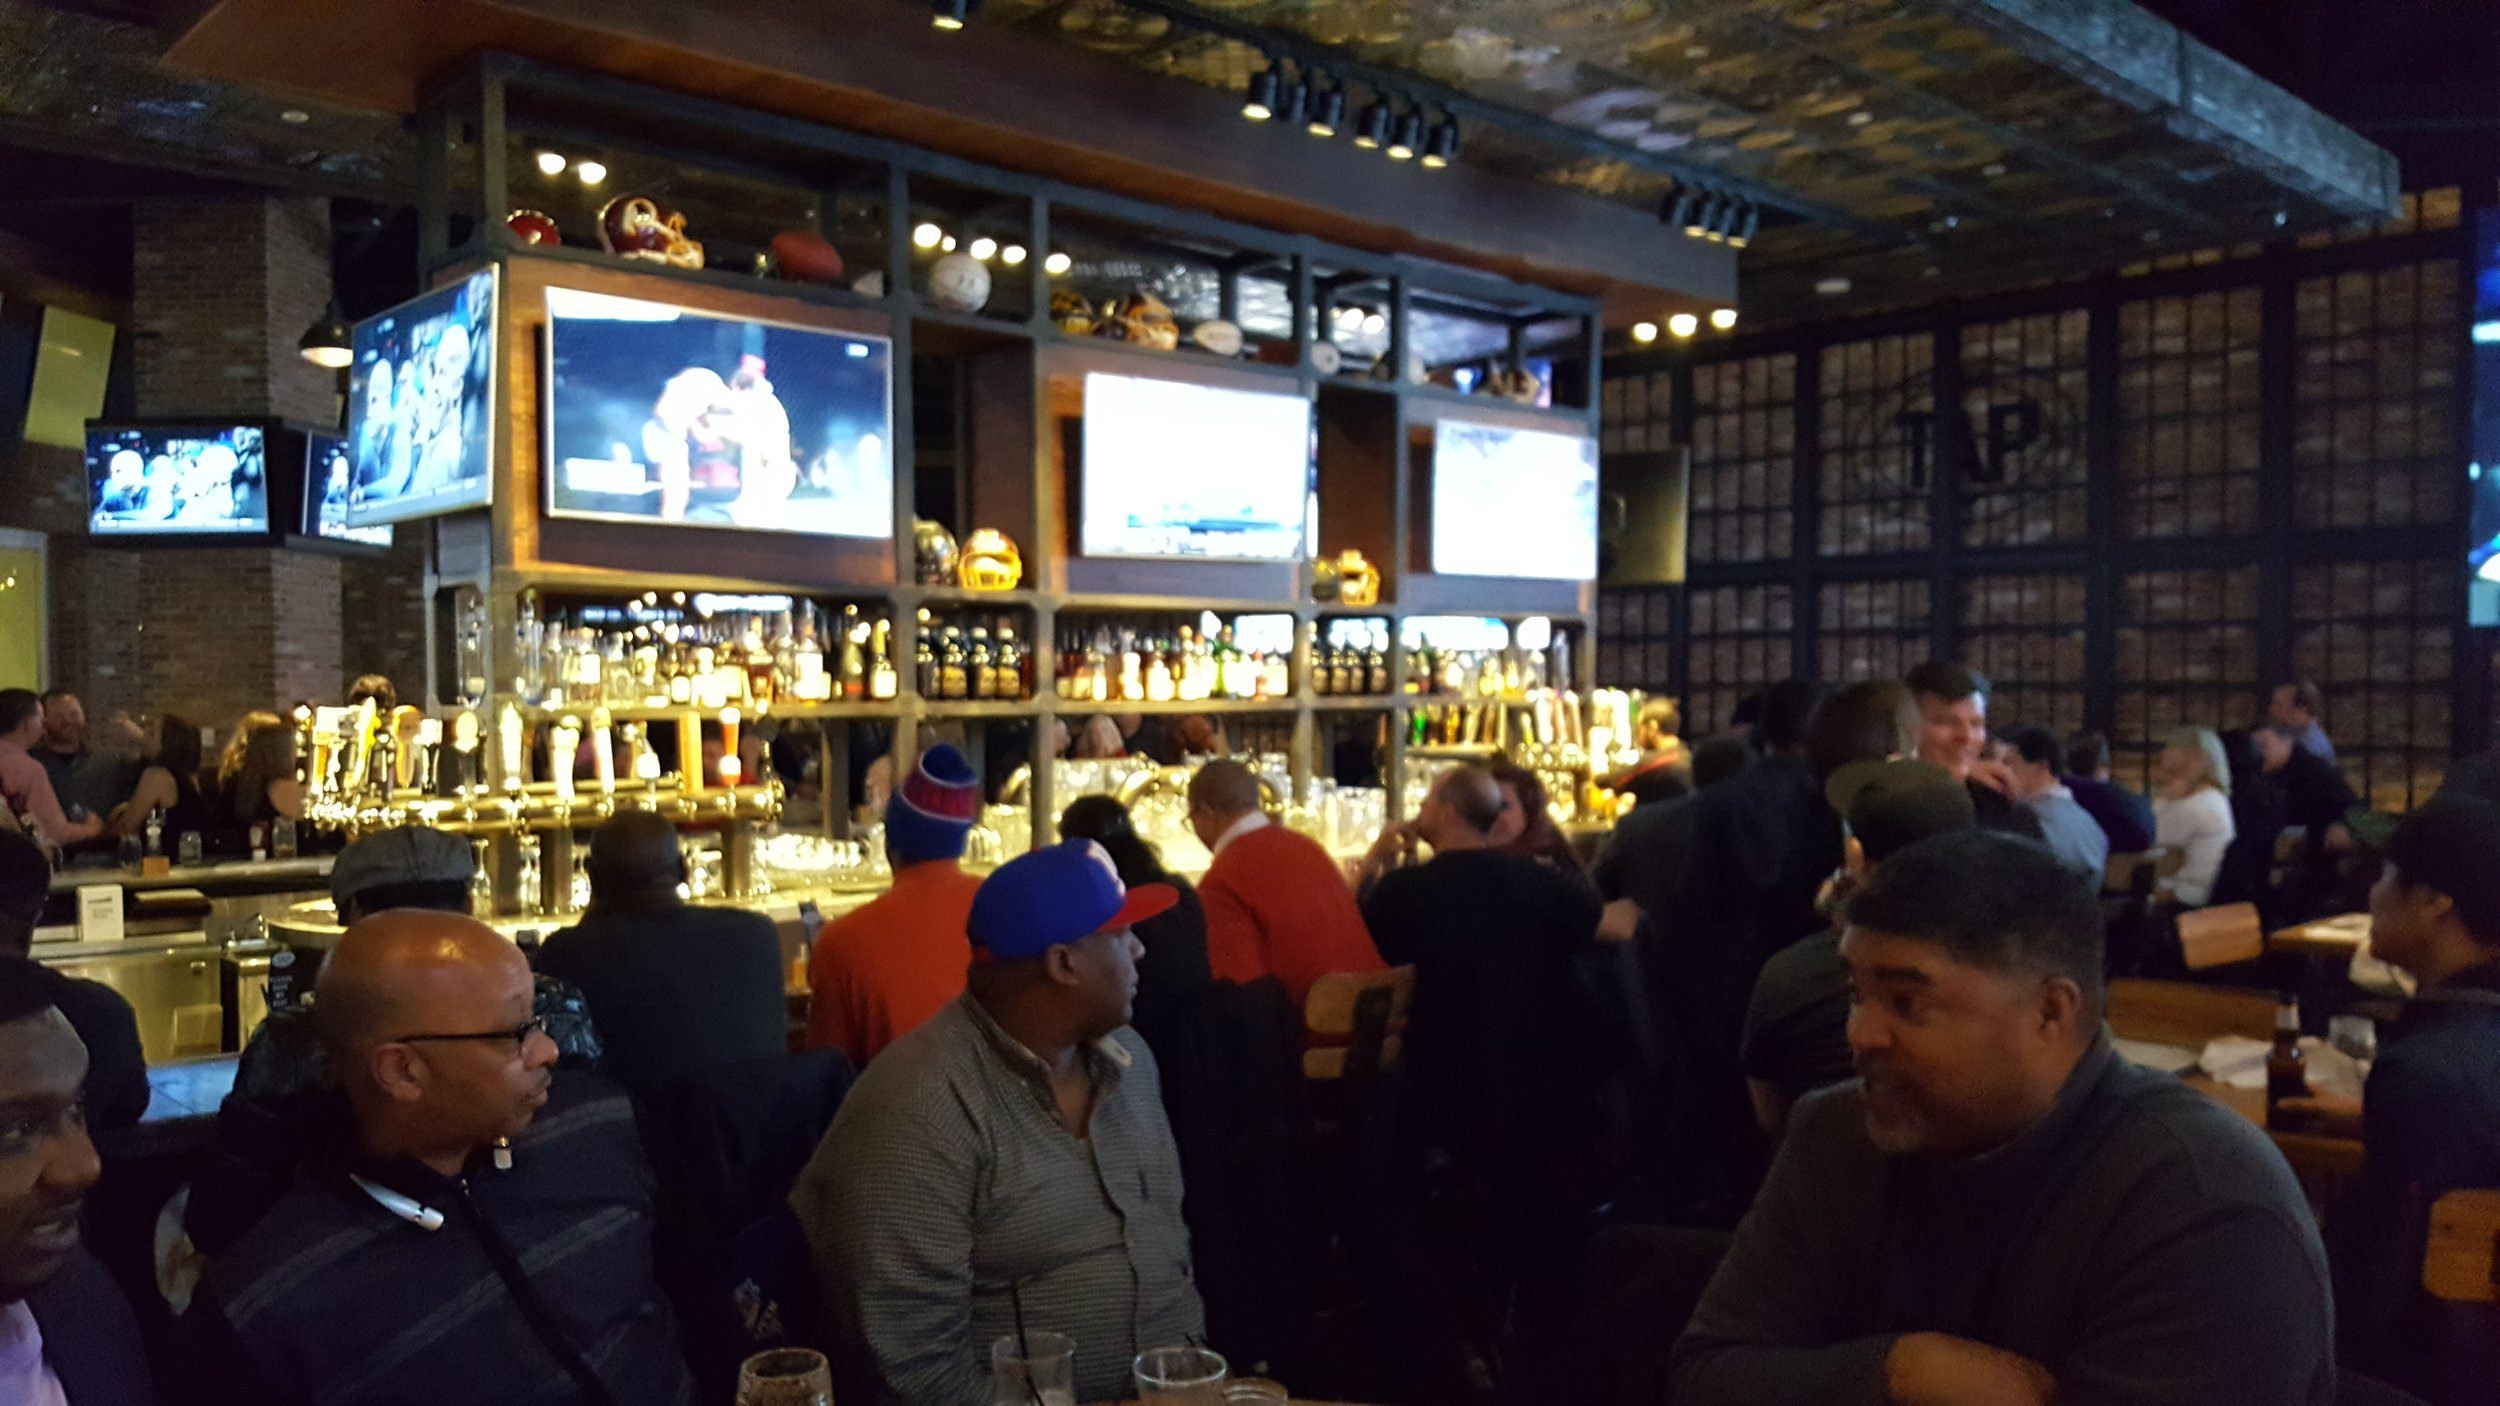 2017.02.03 - Bruh's Night Out, MGM006.jpg